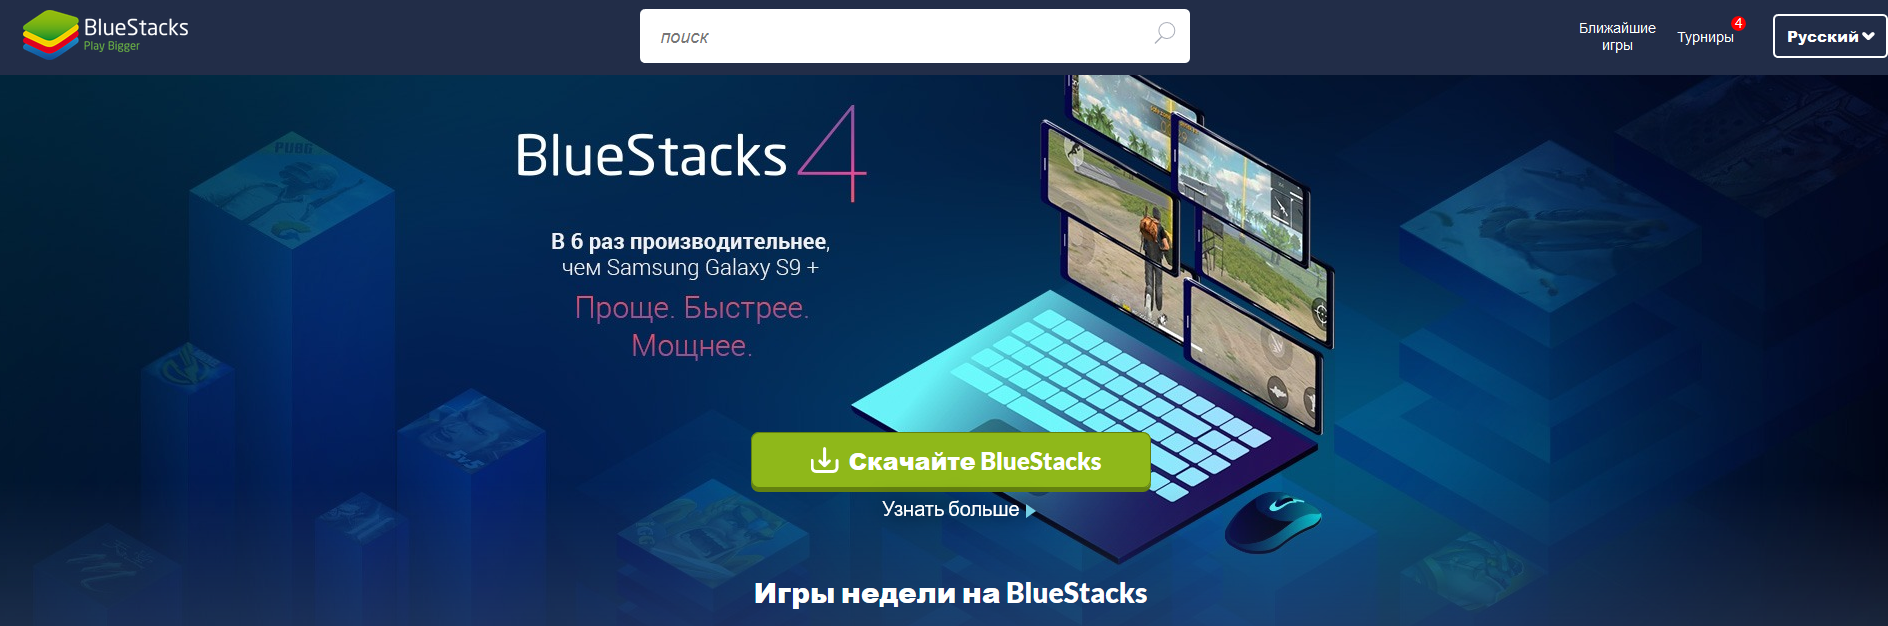 BlueStacks 4 01